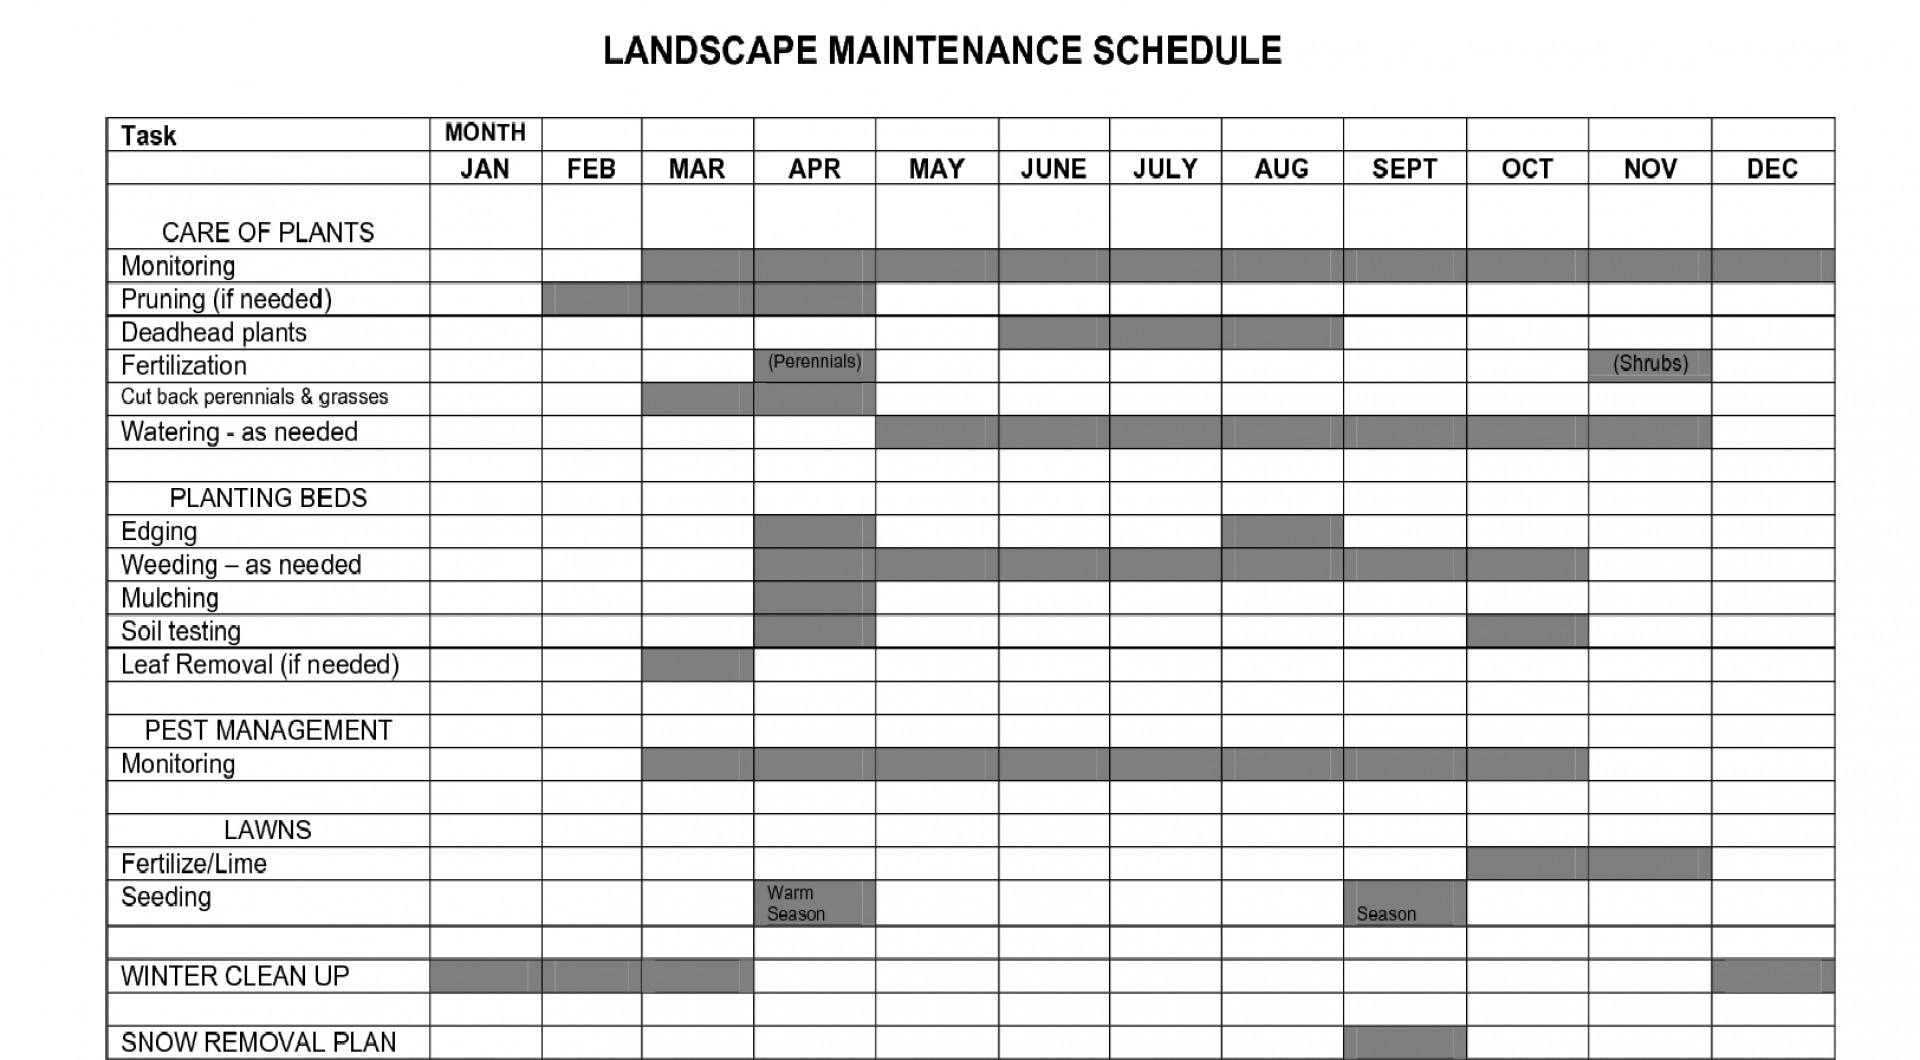 Lawn Care Schedule Spreadsheet Intended For 003 Template Ideas Lawn Maintenance Schedule Contract Tracking Excel